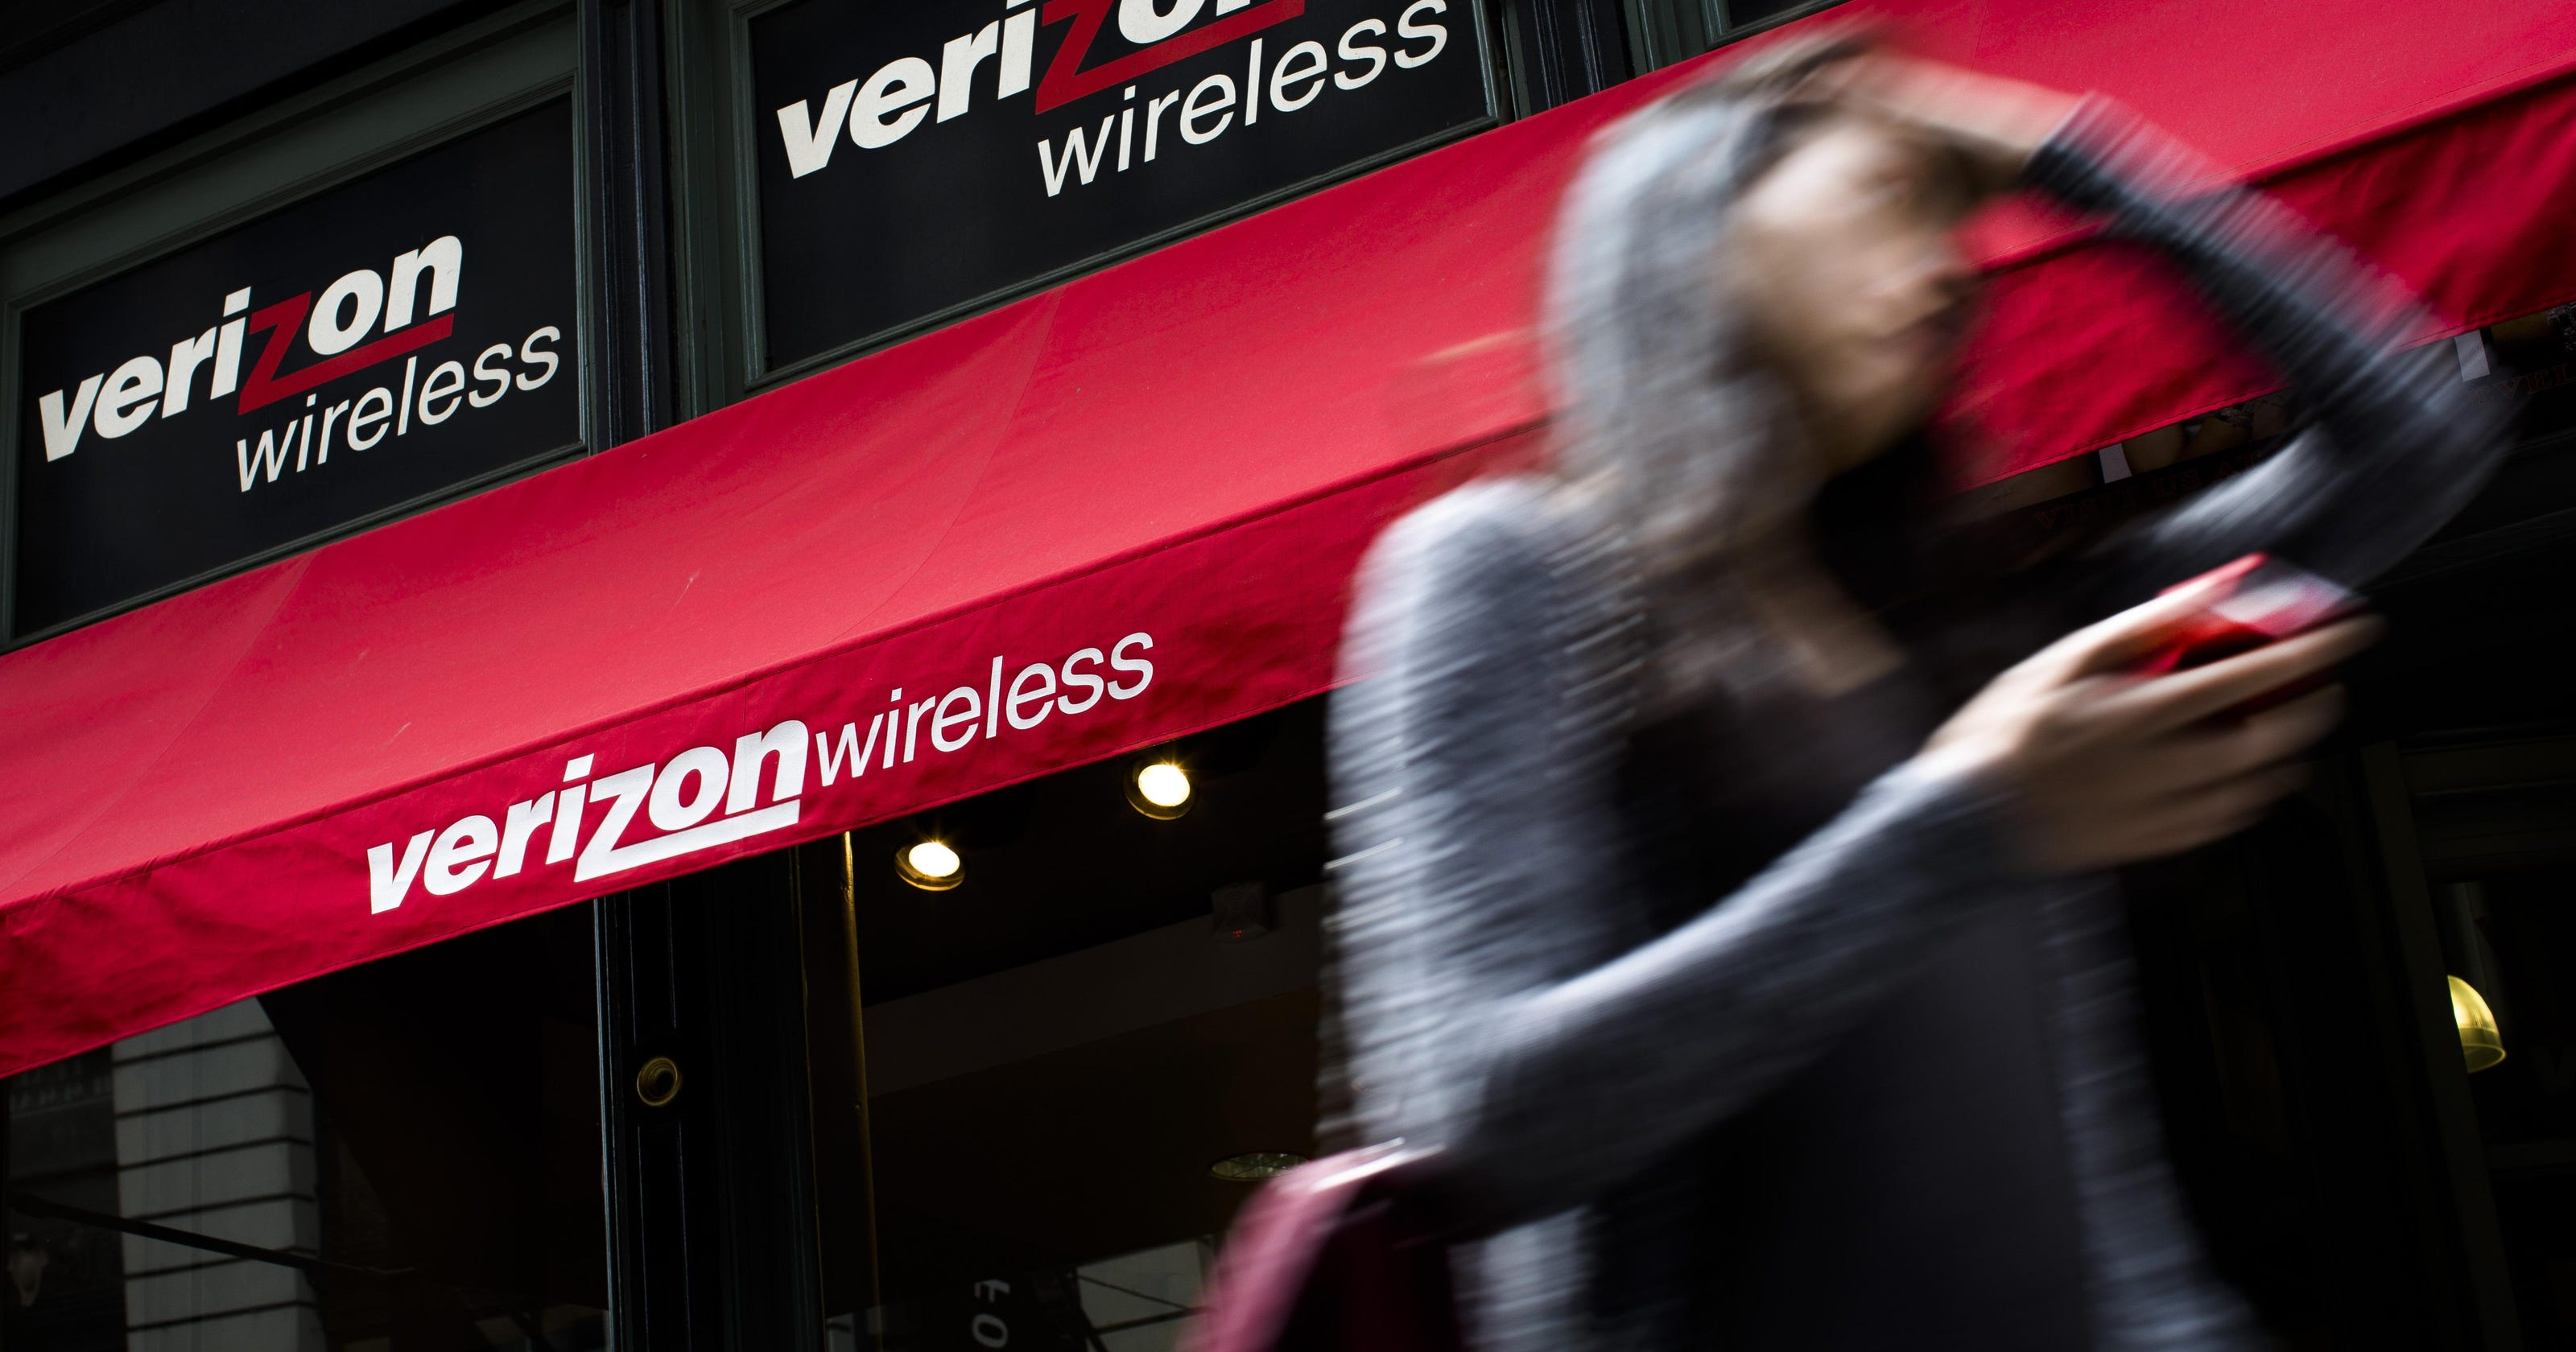 These Verizon and Wells Fargo phone scams are deviously cunning